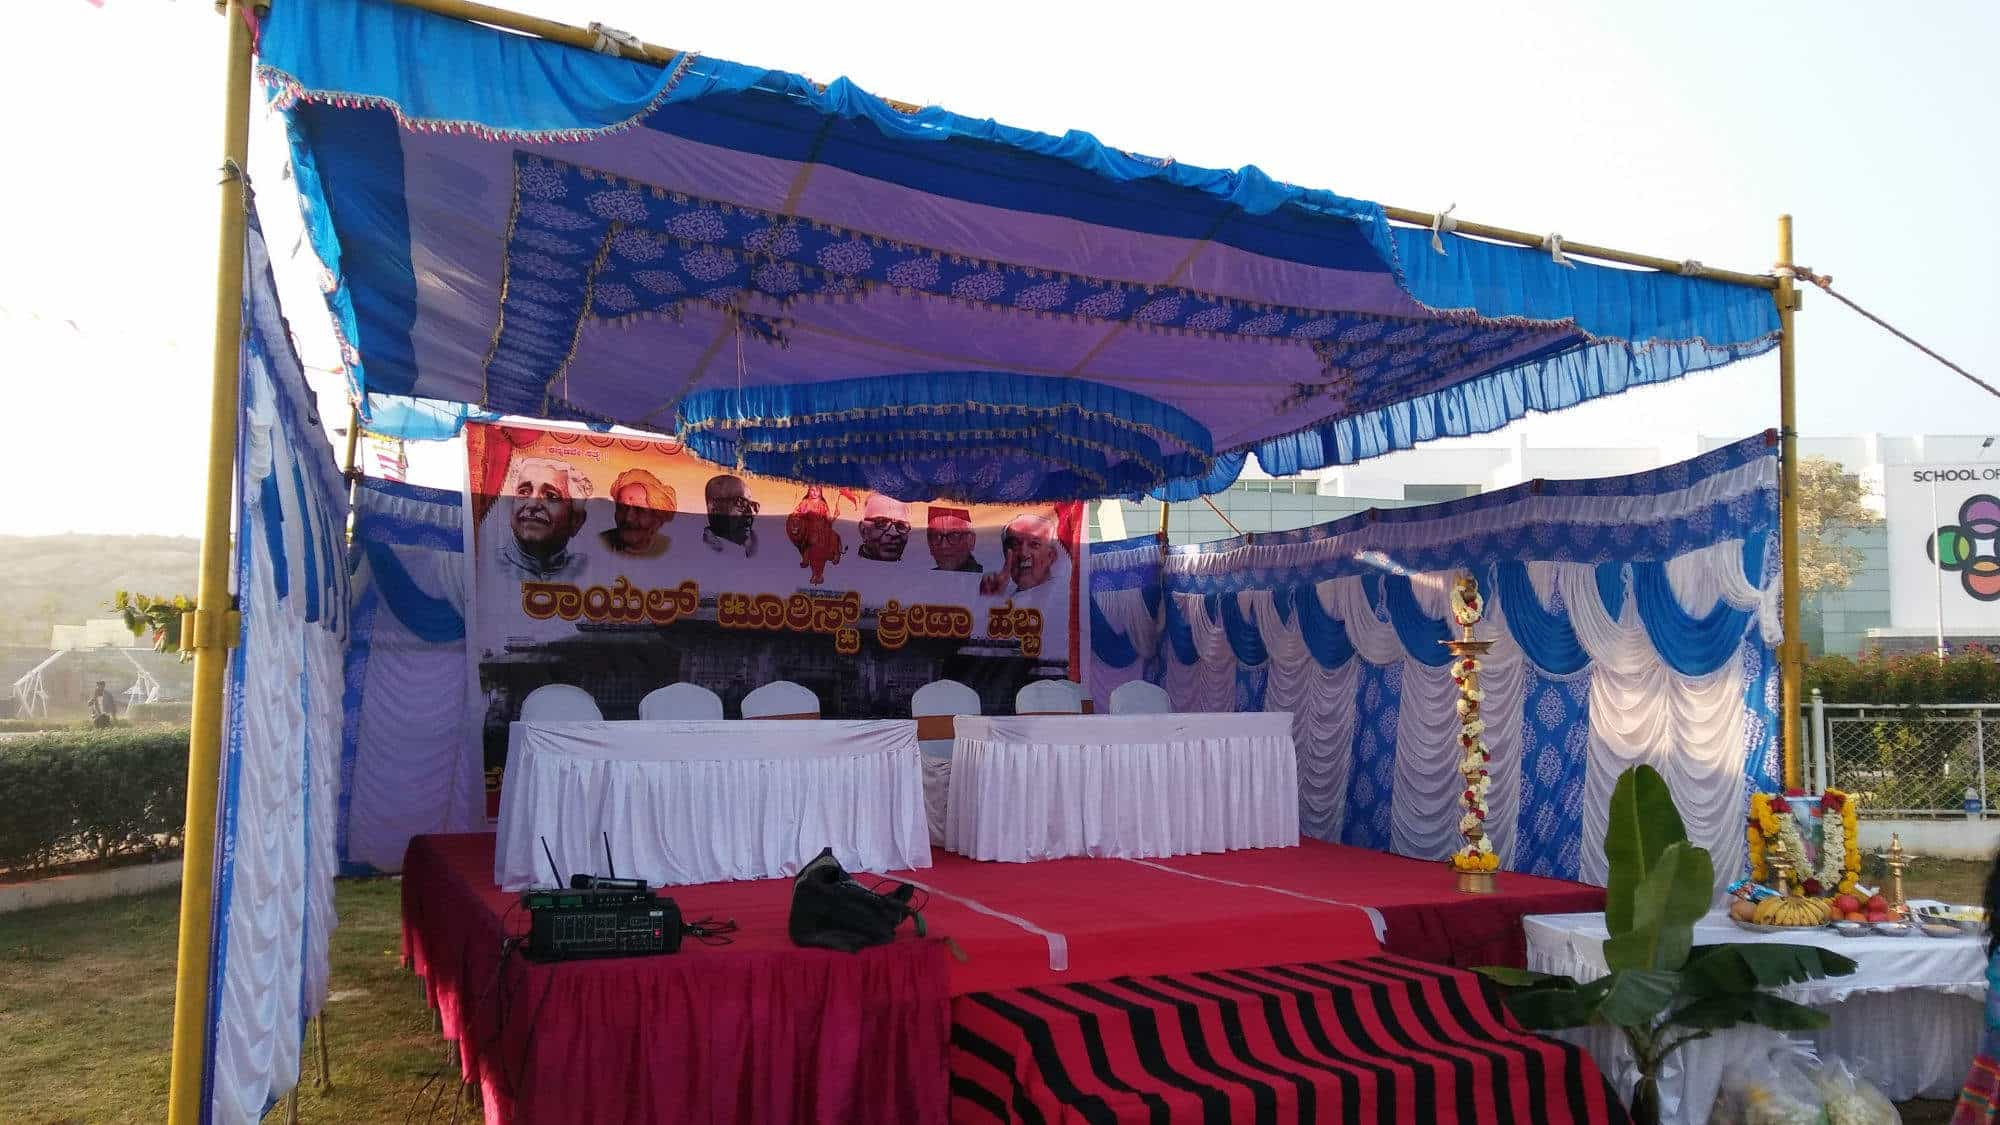 SLV Tent House & SLV Tent House Doddatogur - Tent House in Bangalore - Justdial